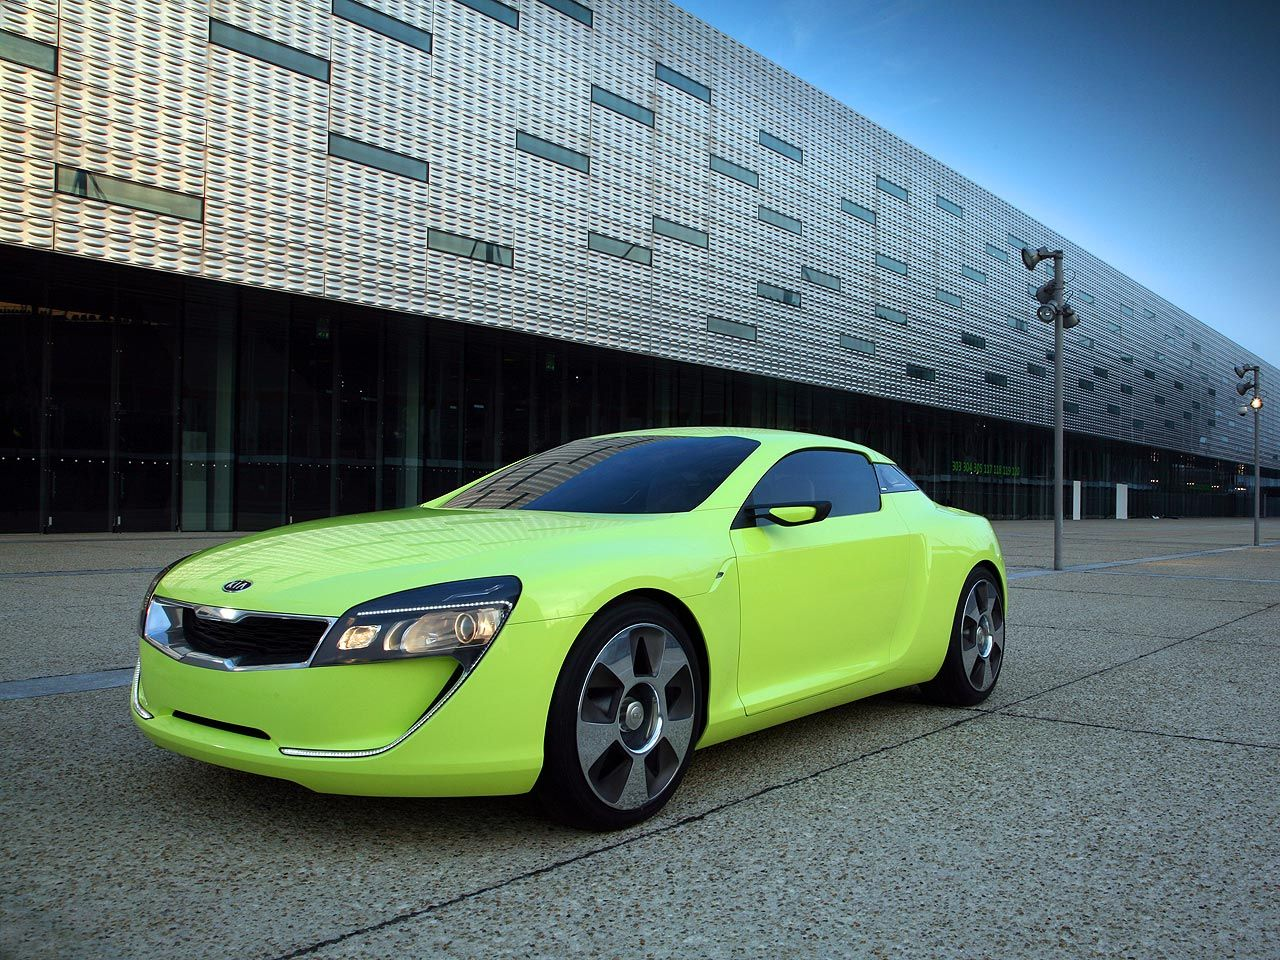 2018 Kia Sports Coupe Concept photo - 2